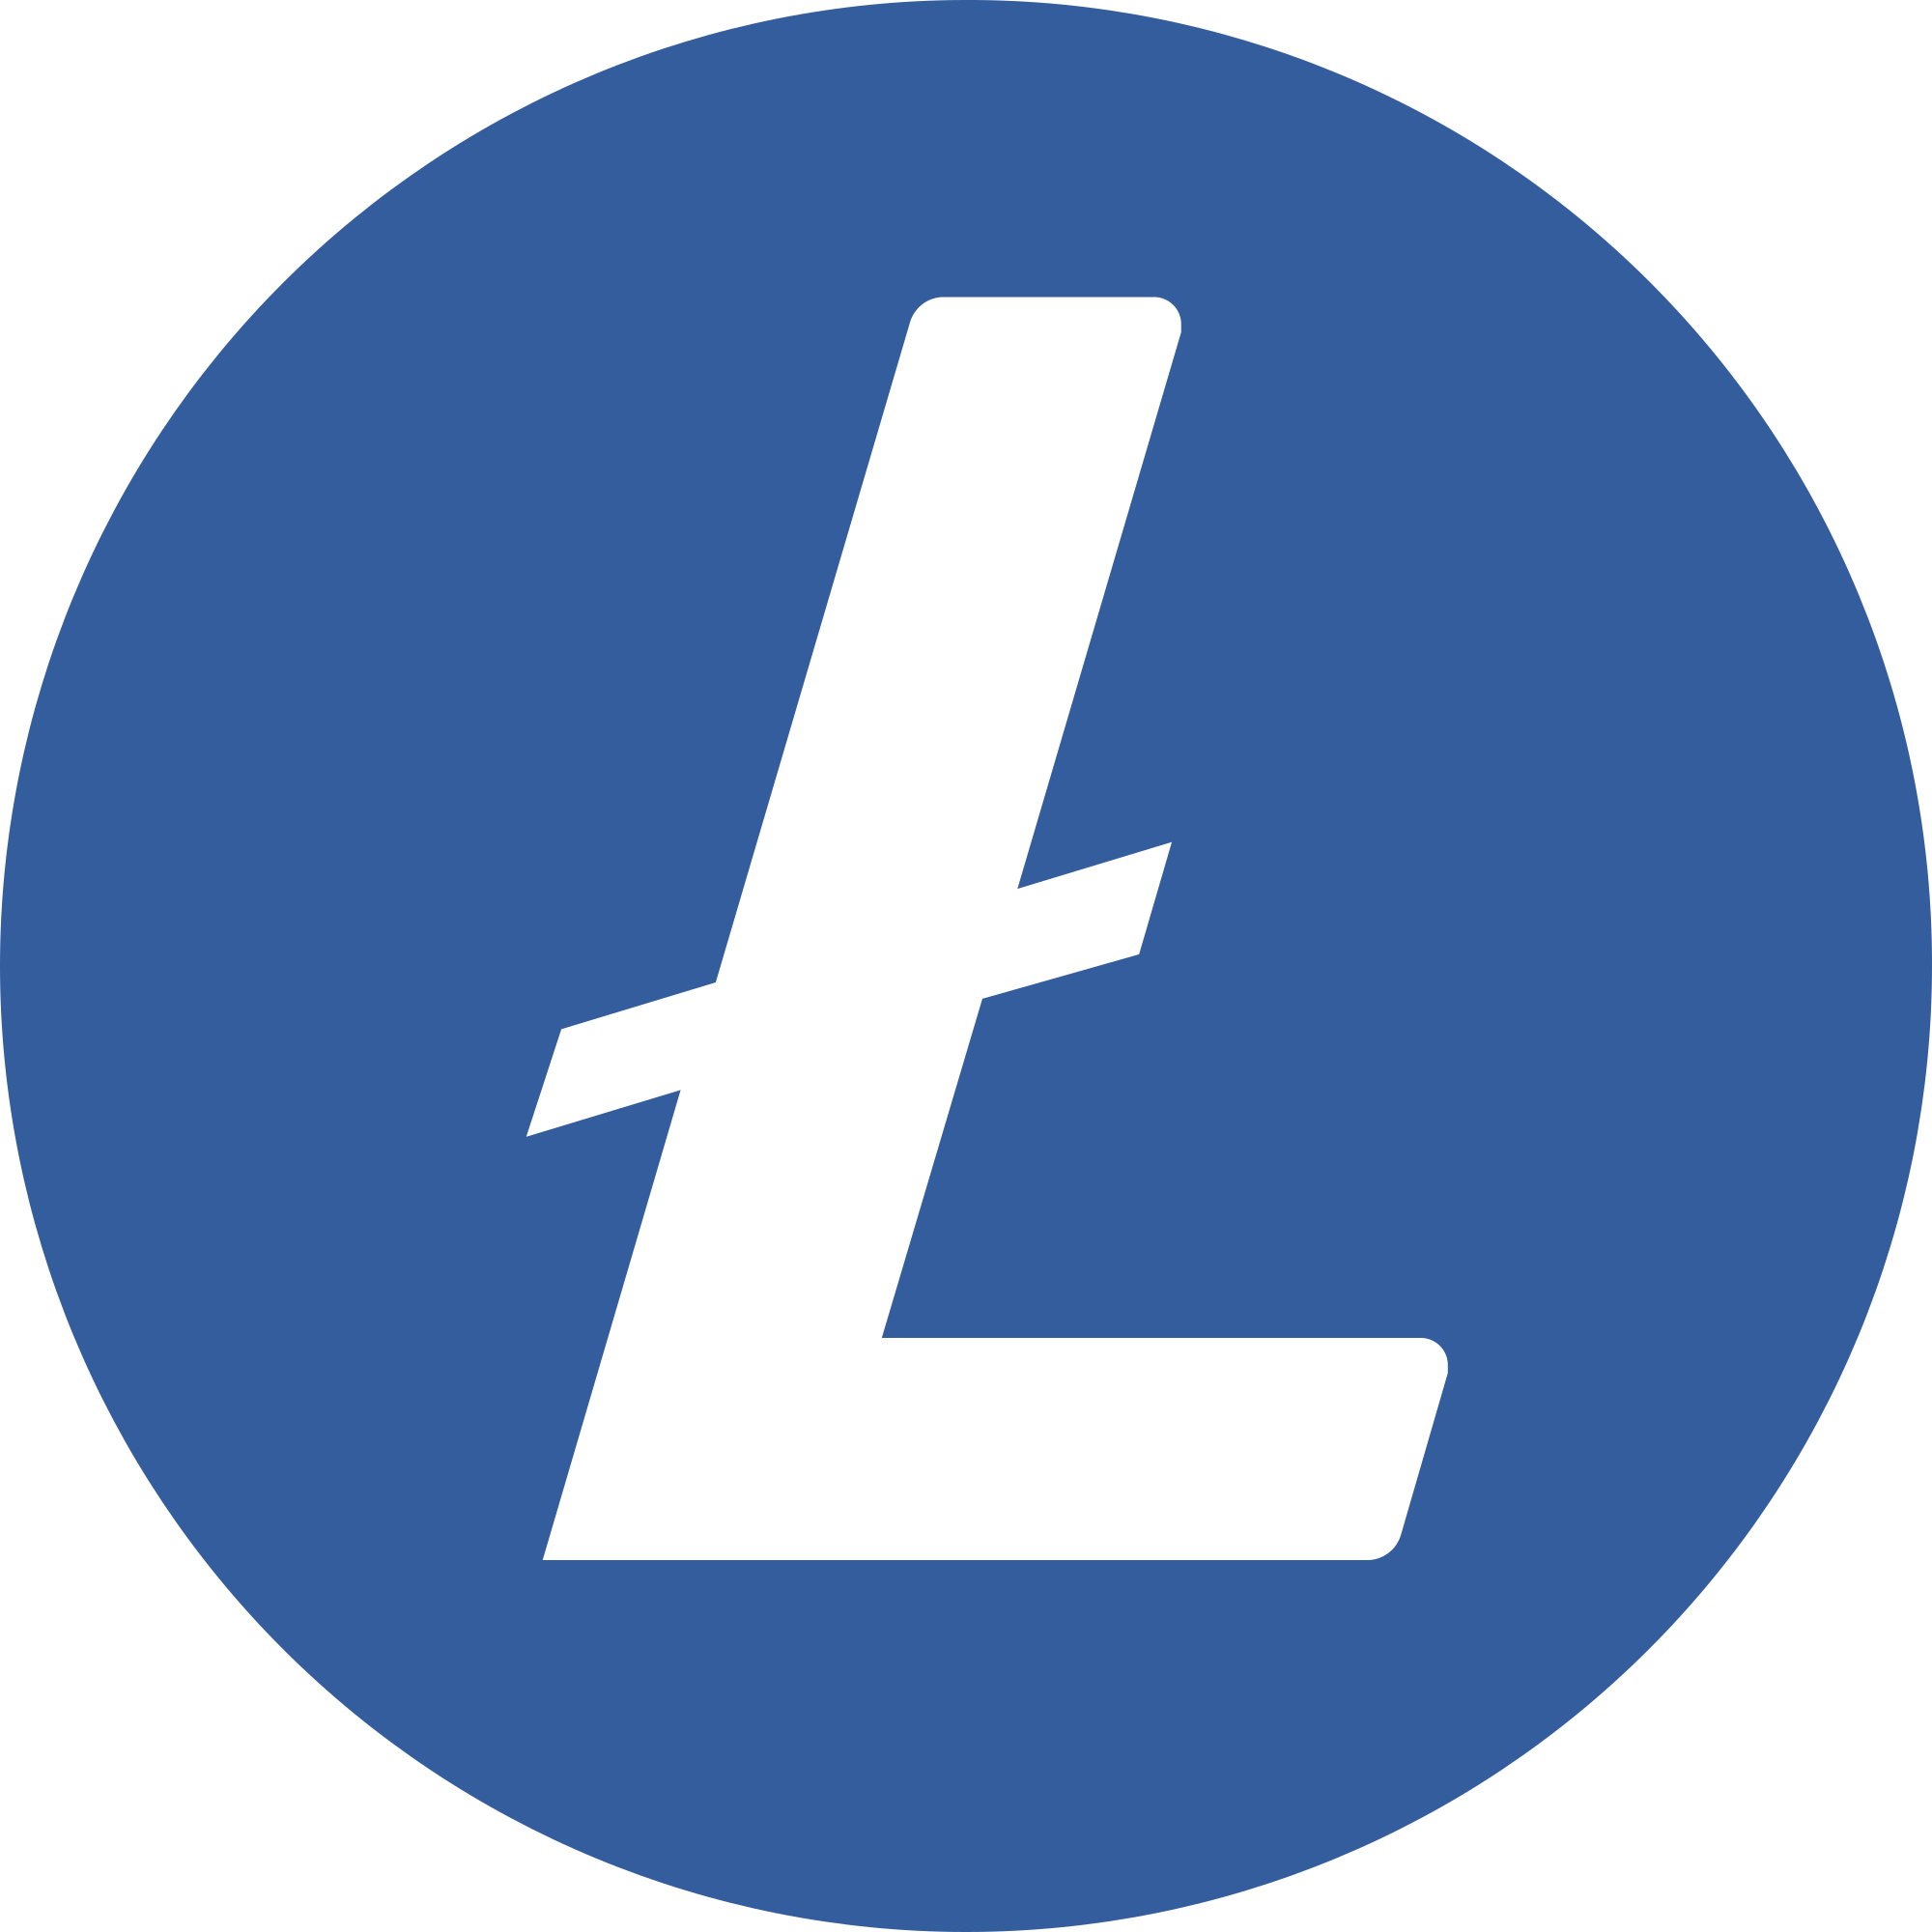 Litecoin (LTC) Logo .SVG and .PNG Files Download